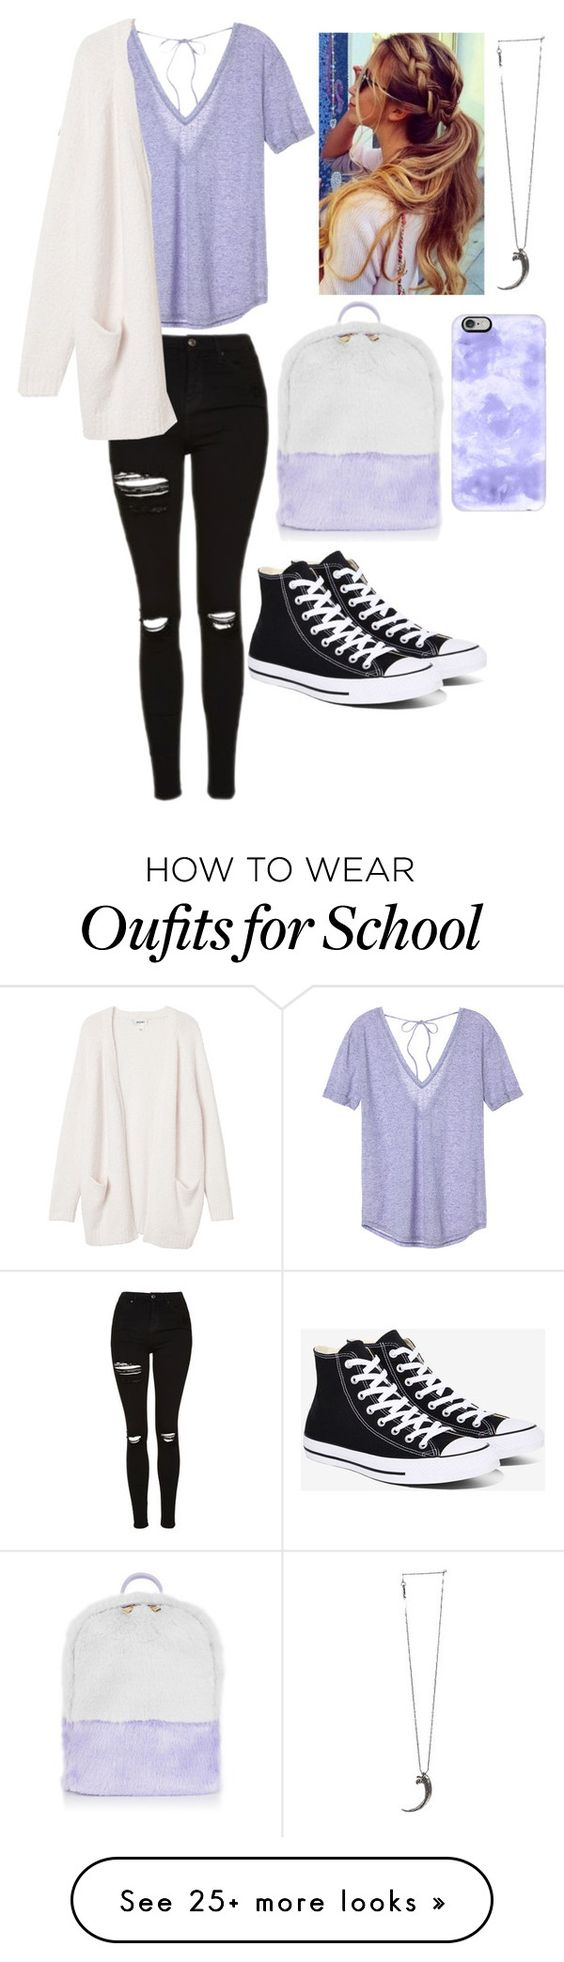 """School: Casual"" by hakay on Polyvore featuring Topshop, Victoria's Secret, Converse, Monki, Pamela Love and Casetify"